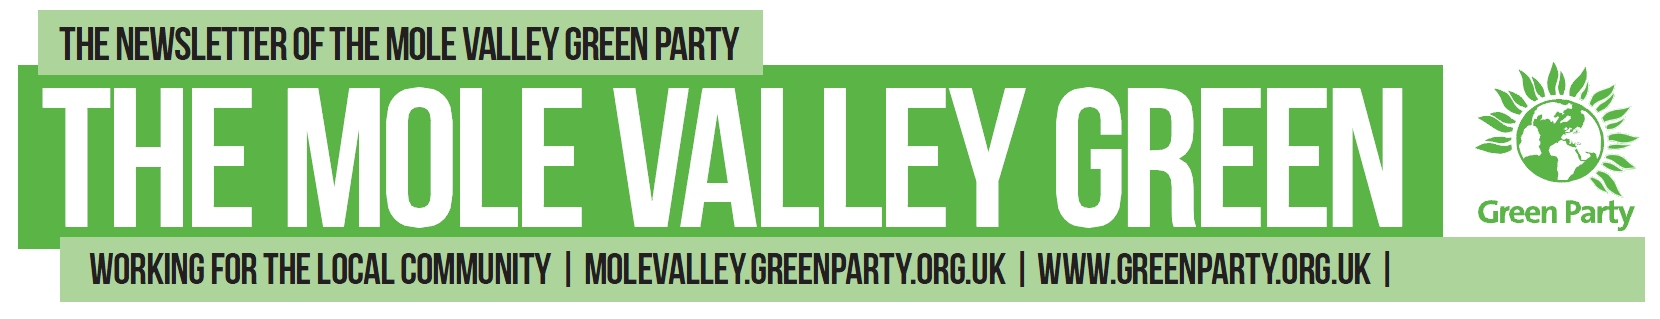 Mole Valley Green Newsletter